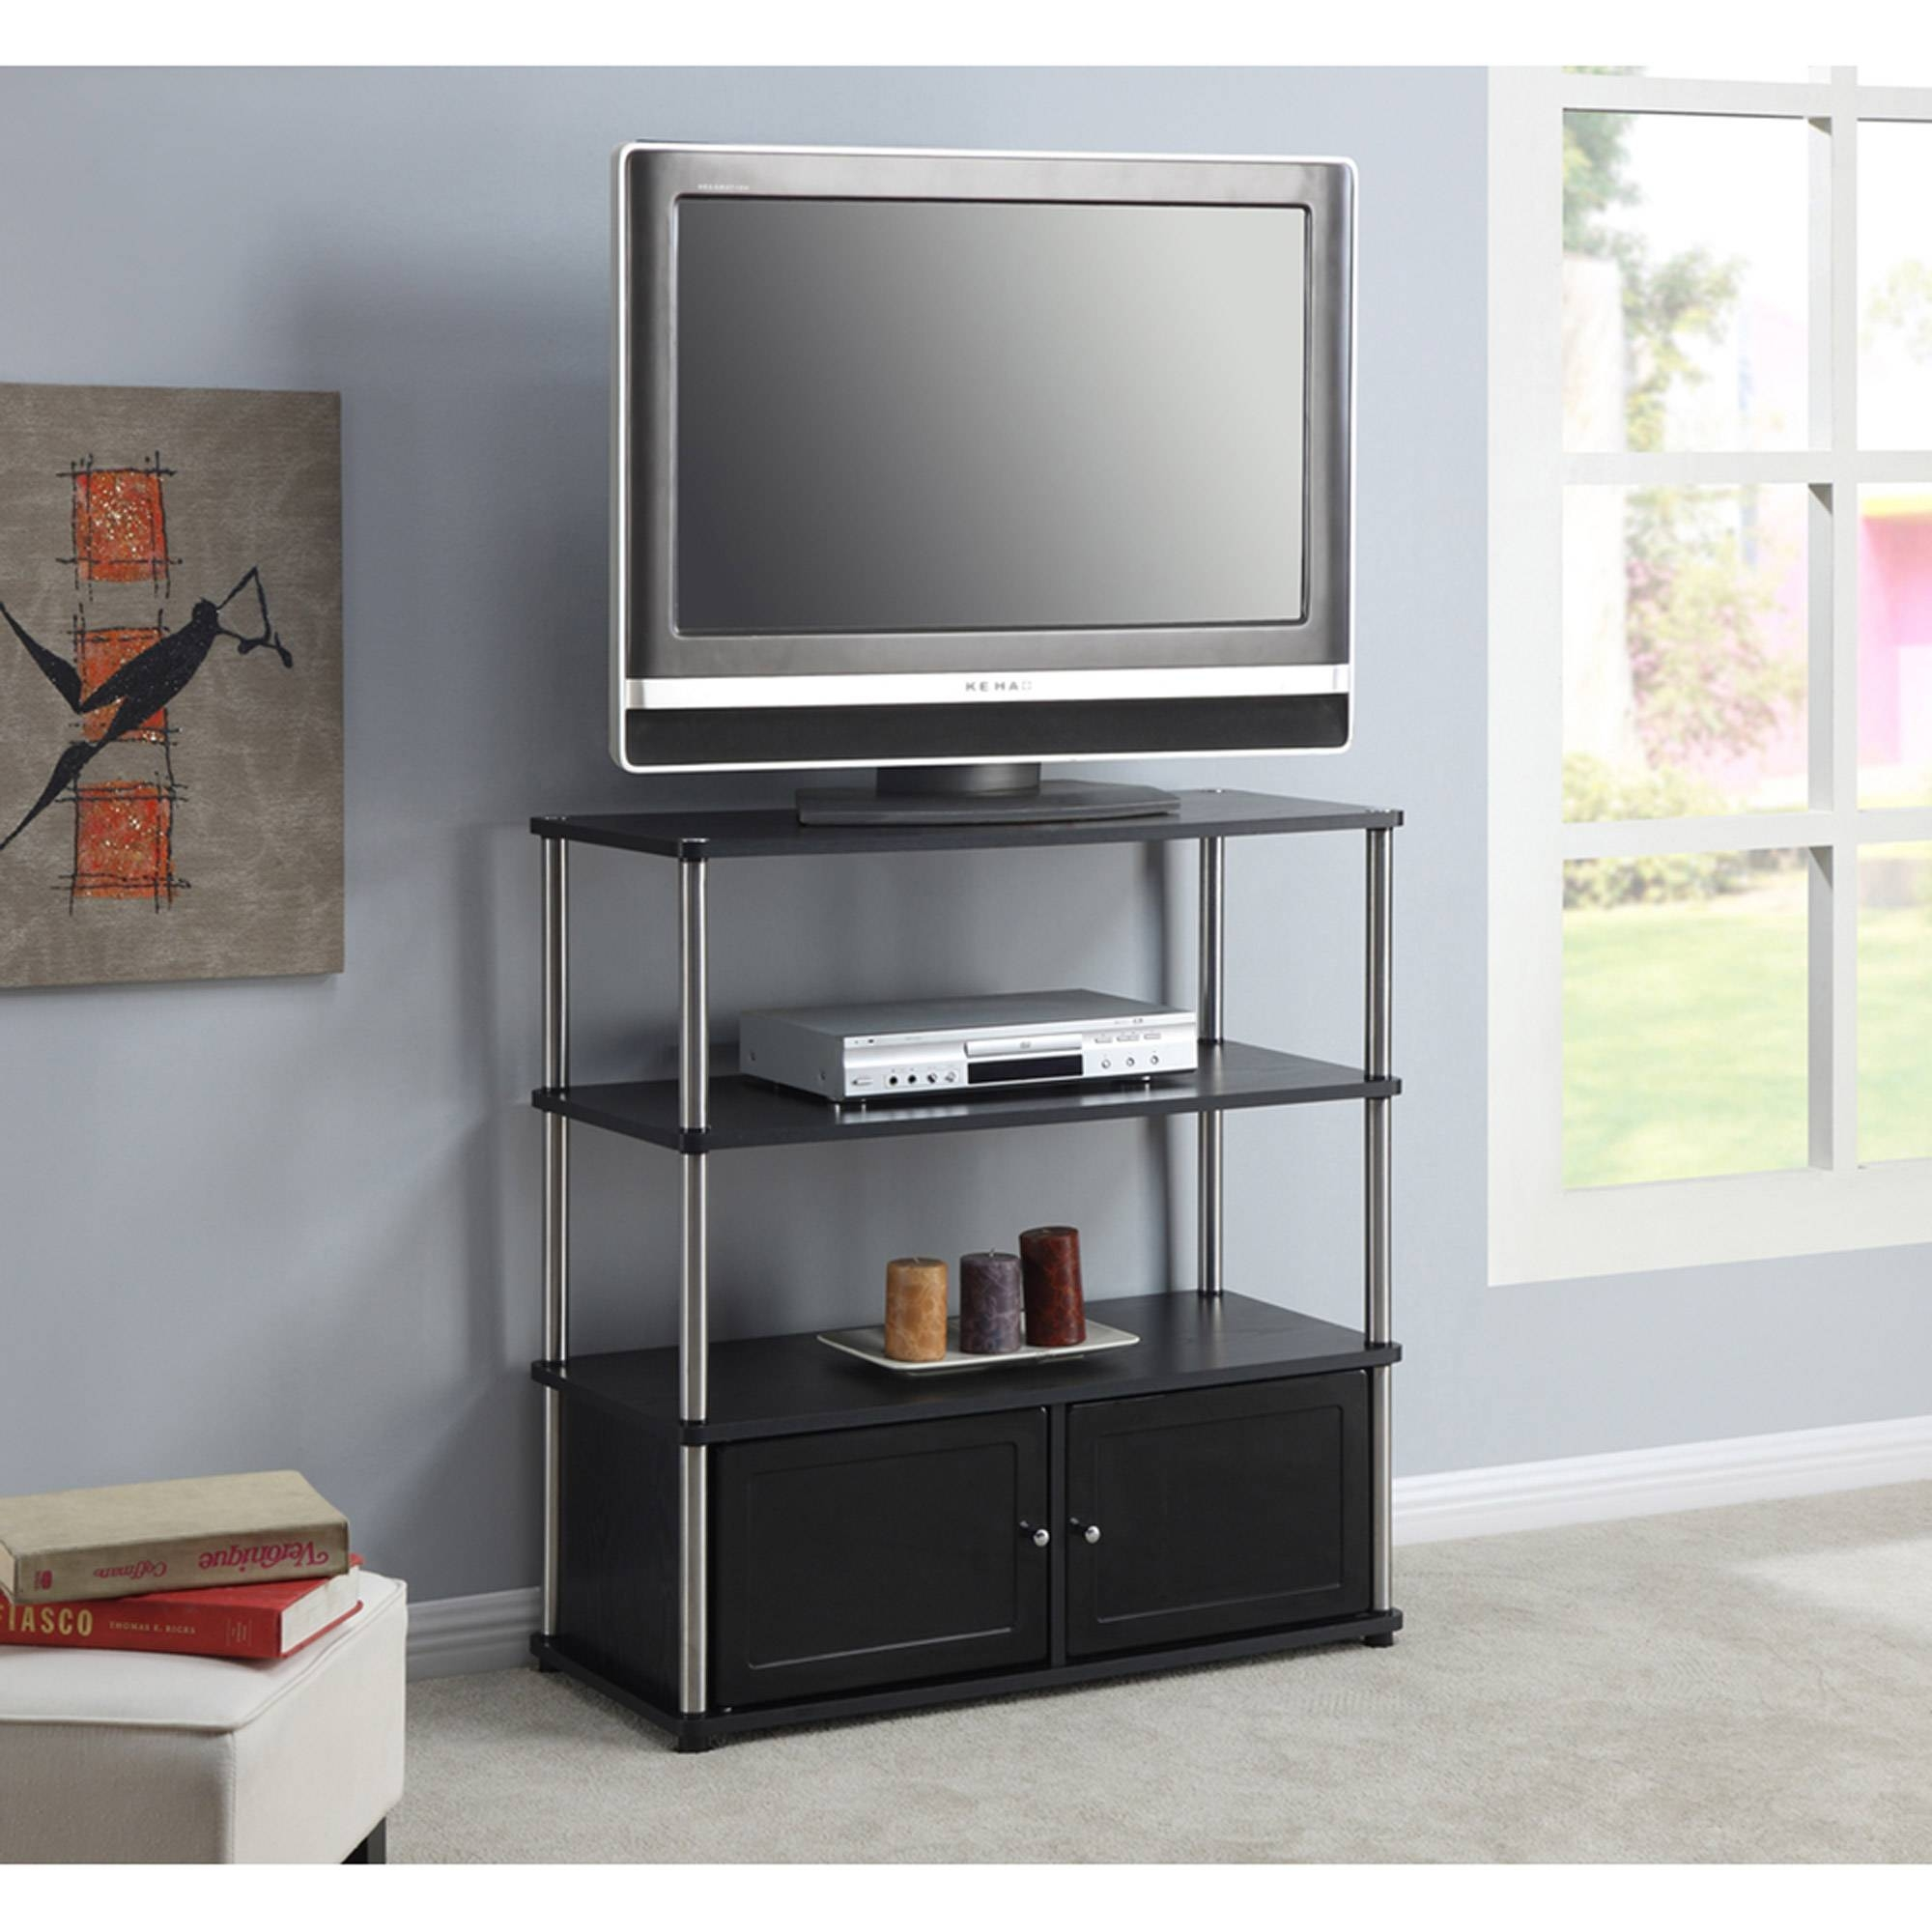 Bedroom : Tv Stand For 65 Inch Tv Wooden Tv Stand For 50 Inch Tv in Skinny Tv Stands (Image 2 of 15)